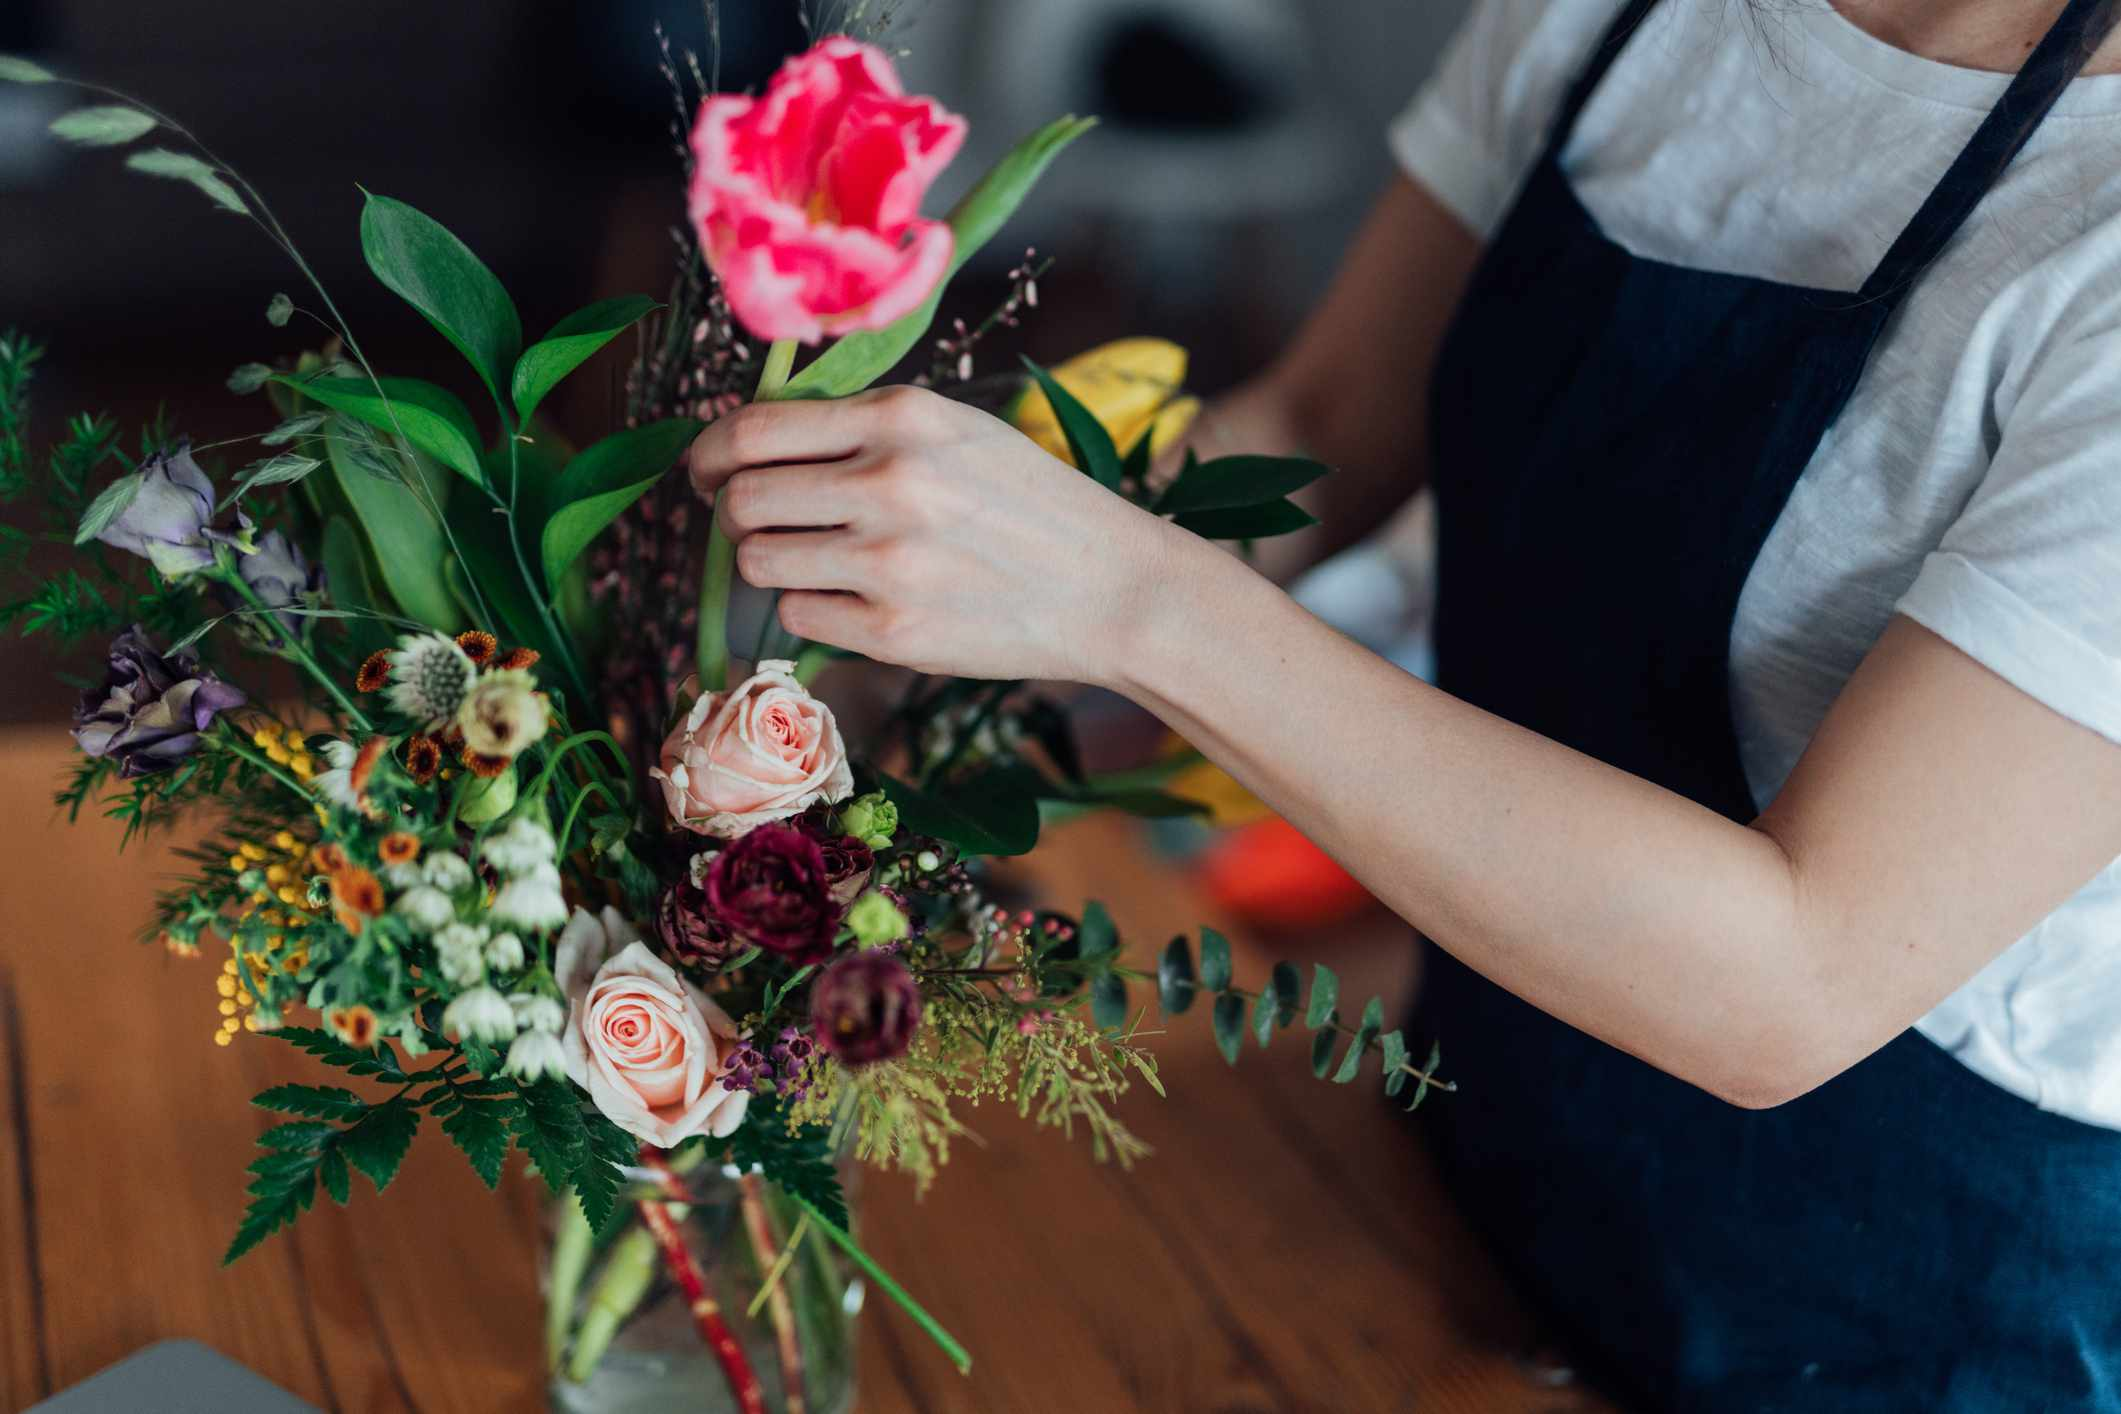 Cropped image of woman arranging flowers in vase